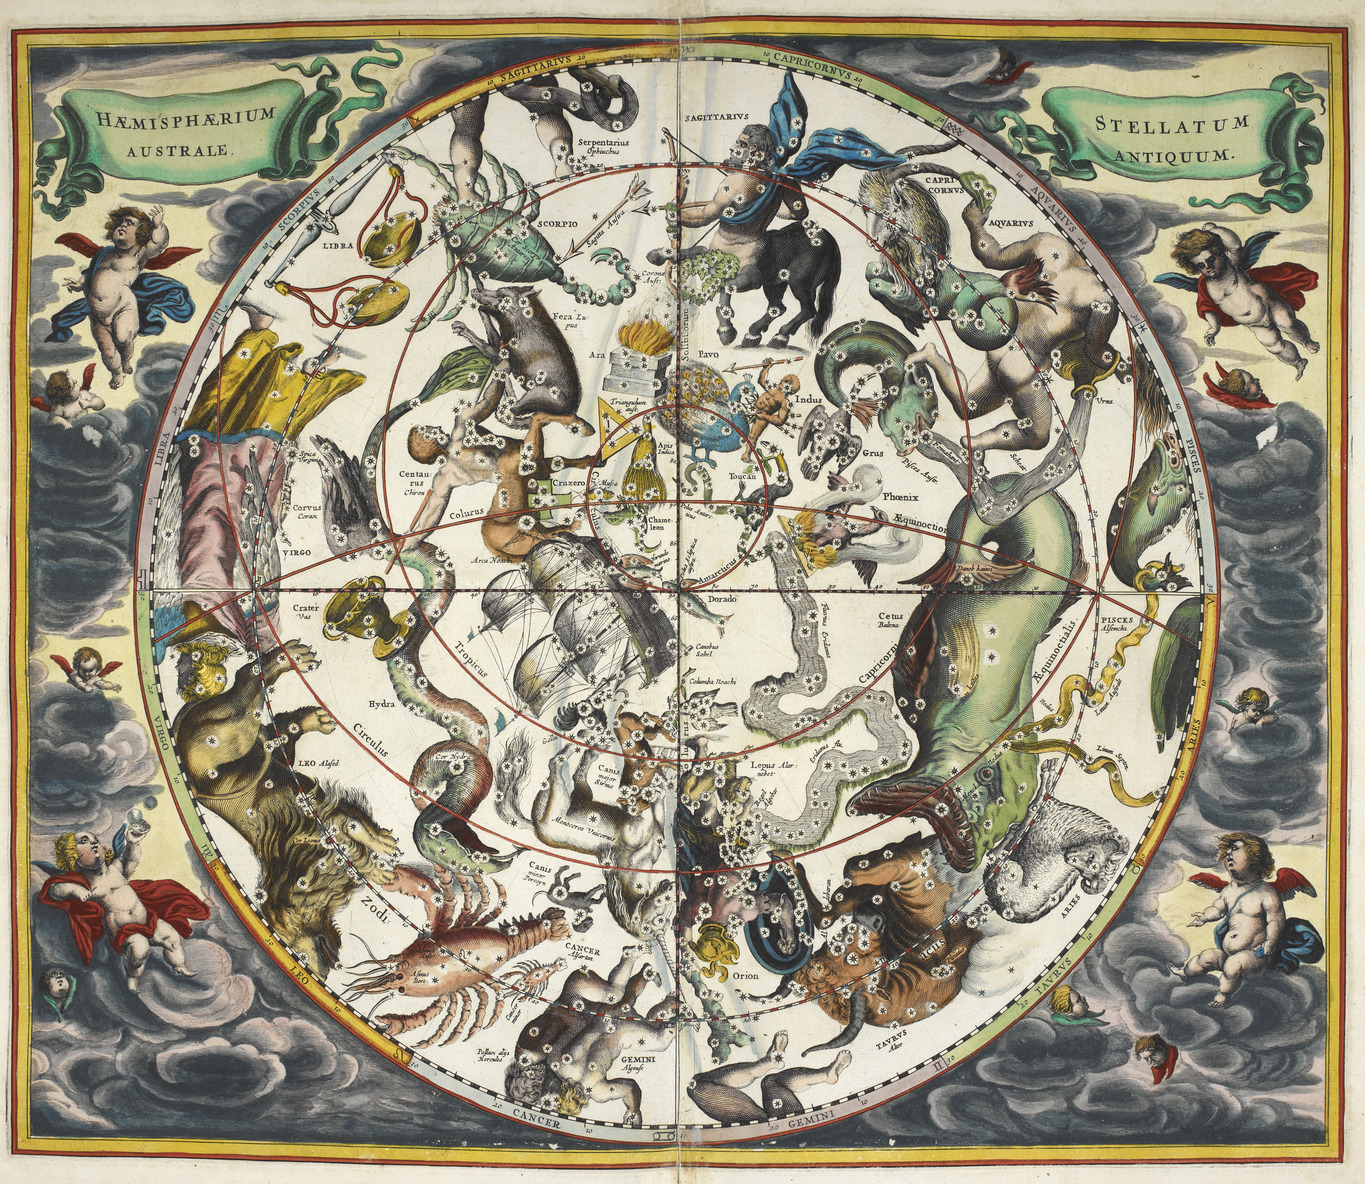 File:The constellations, with astrological signs of the zodiac - Atlas  Coelestis (1660